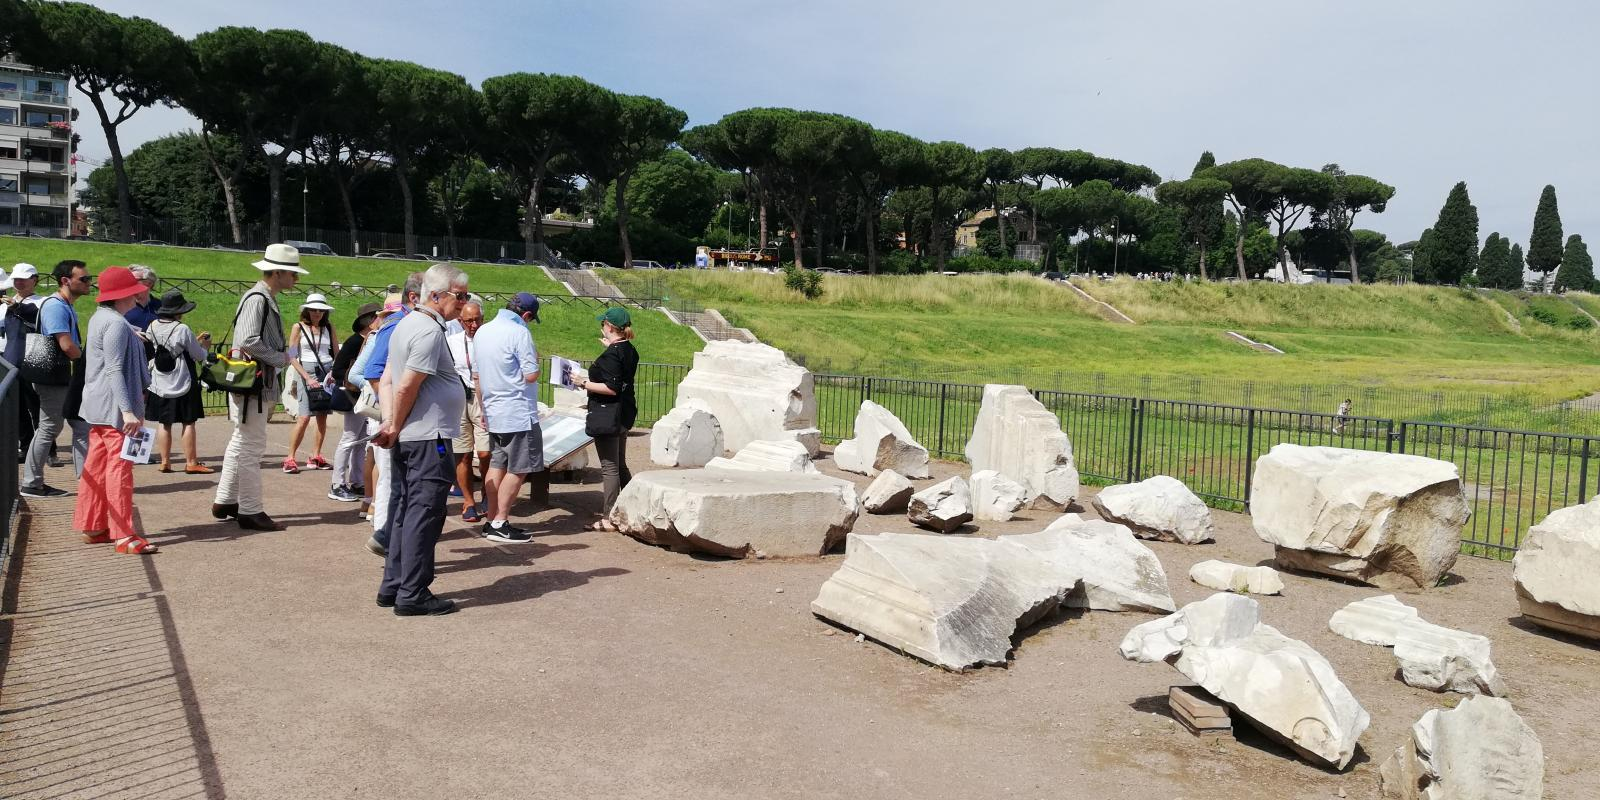 Lauren Donovan Ginsberg and Catherine Bonesho lead tour group at the Circus Maximus. Photo Courtesy of the American Academy in Rome.